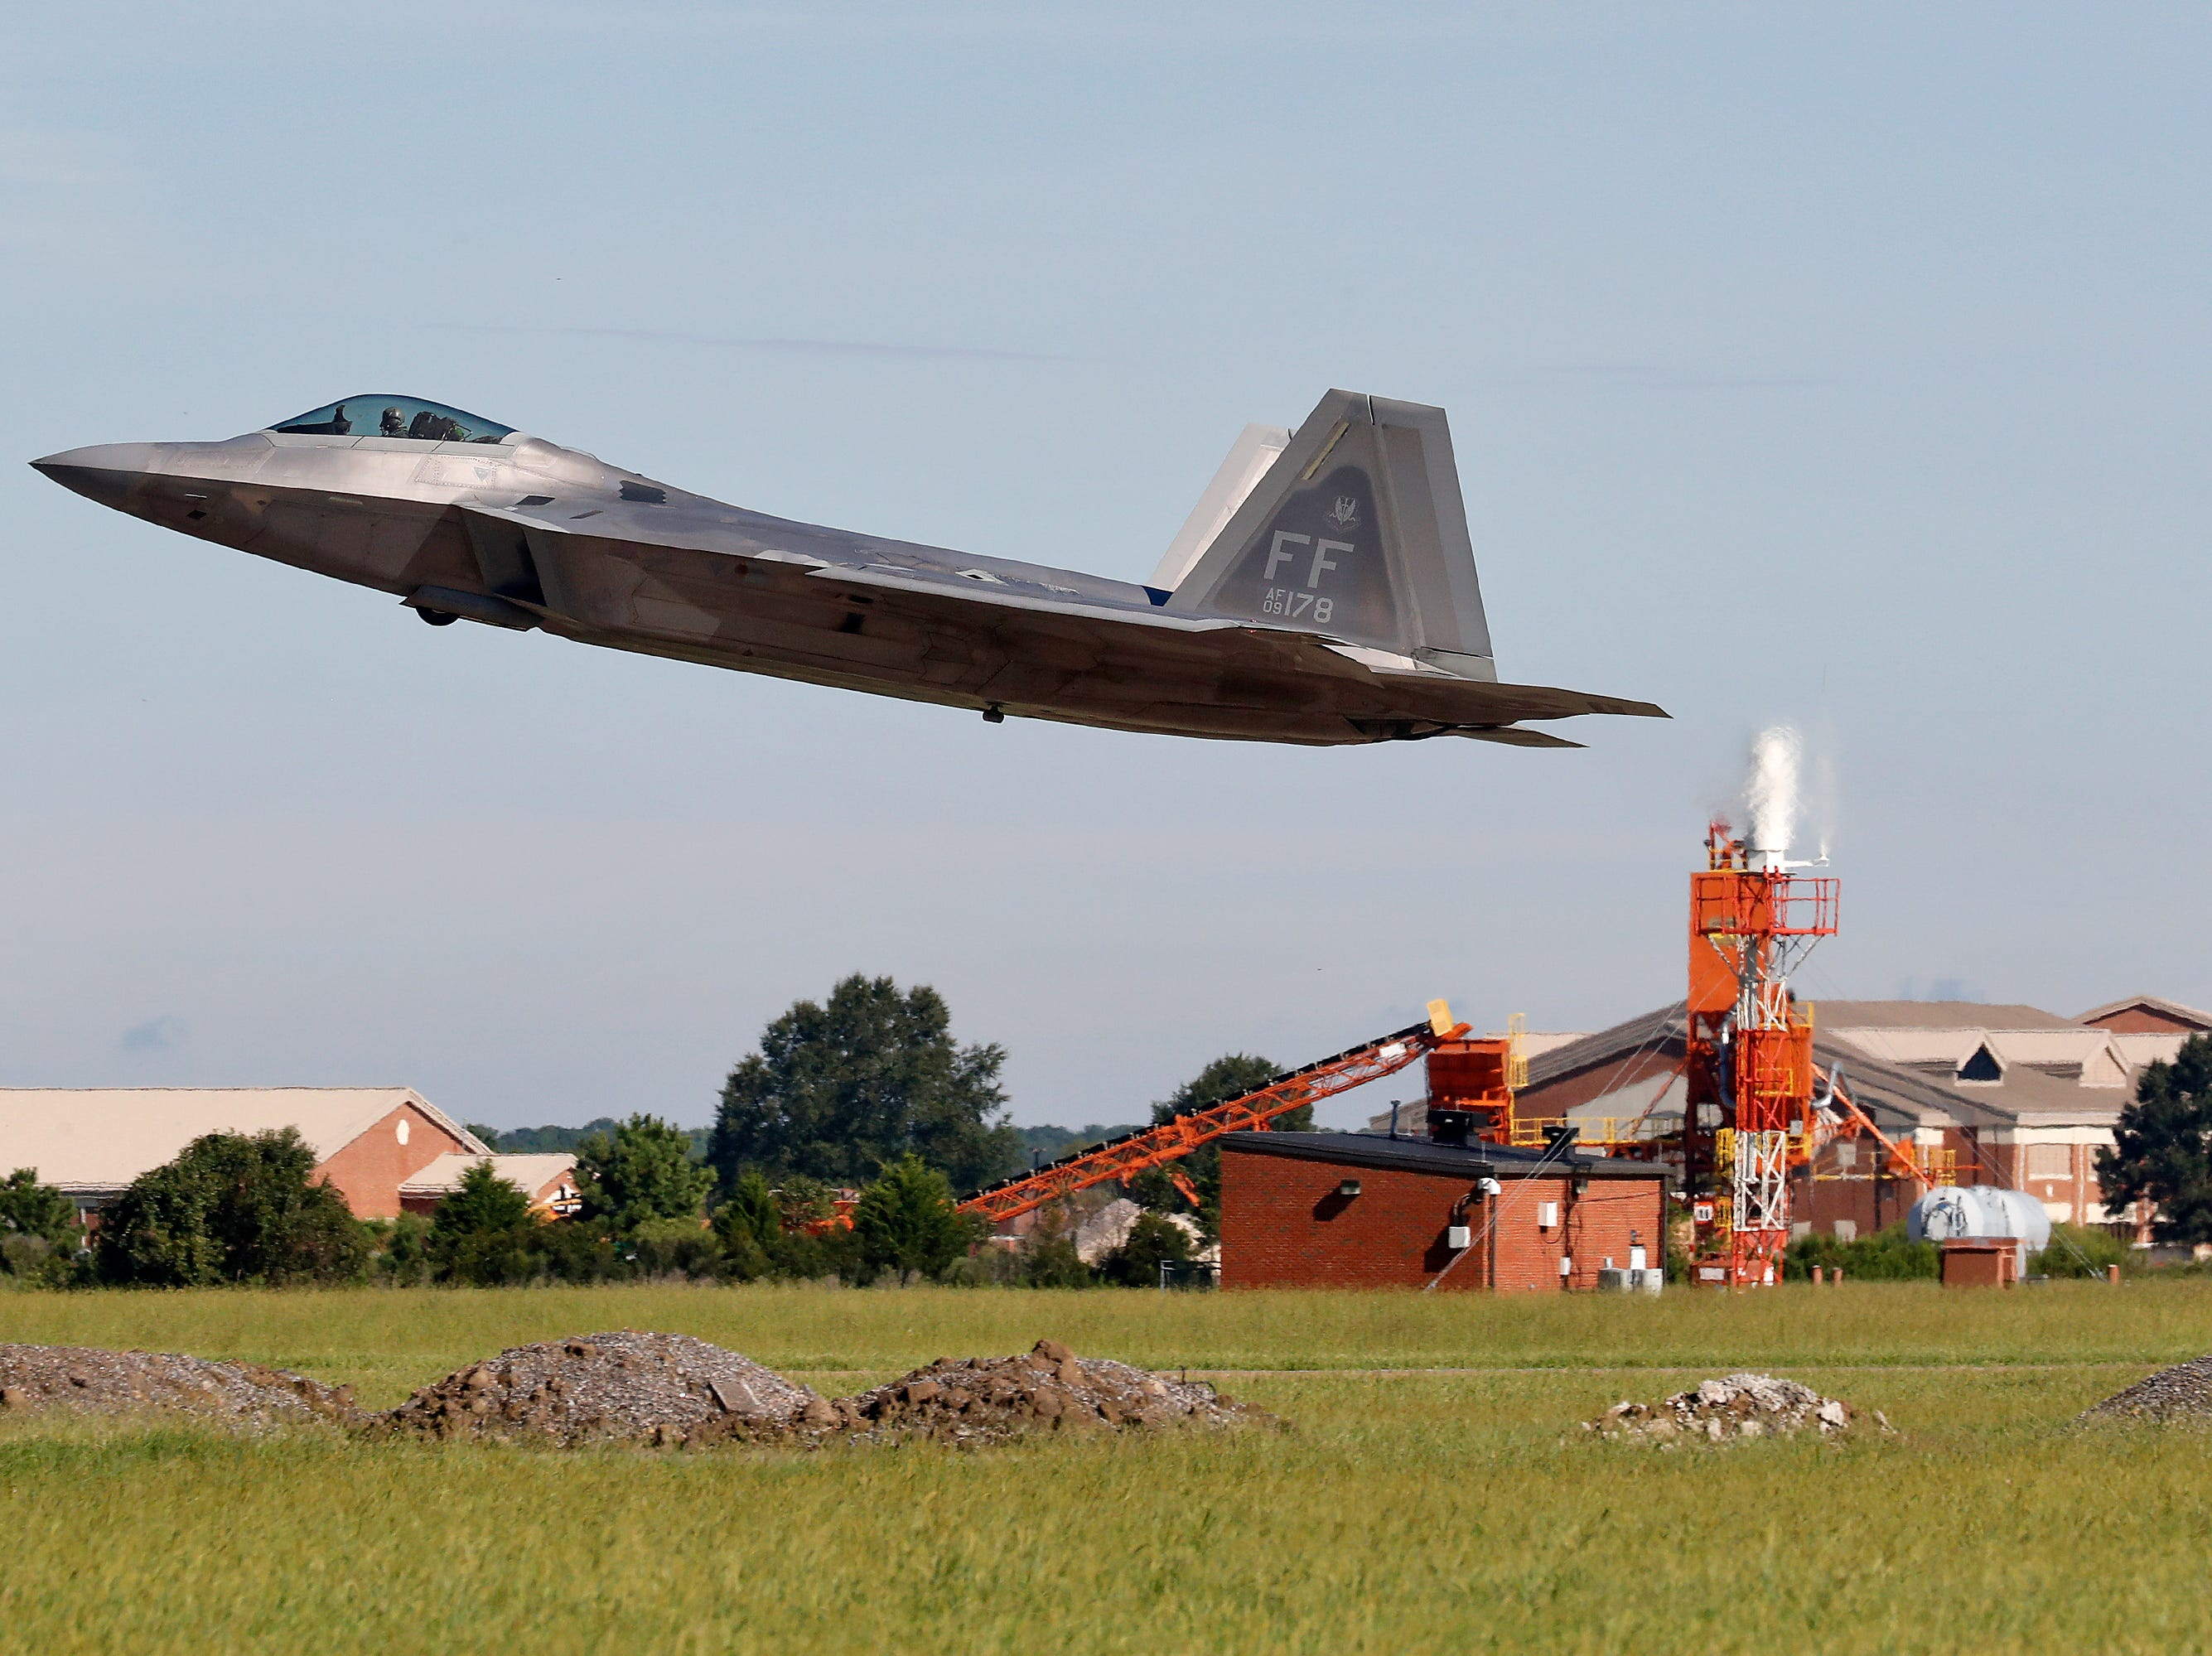 An F-22 departs Langley Air Force Base, Va., Tuesday morning, Sept. 11, 2018, as Hurricane Florence approaches the Eastern Seaboard. Officials from Joint Base Langley-Eustis in Hampton said the base's F-22 Raptors and T-38 Talon training jets, as a precaution, were headed for Rickenbacker Air National Guard Base in central Ohio.